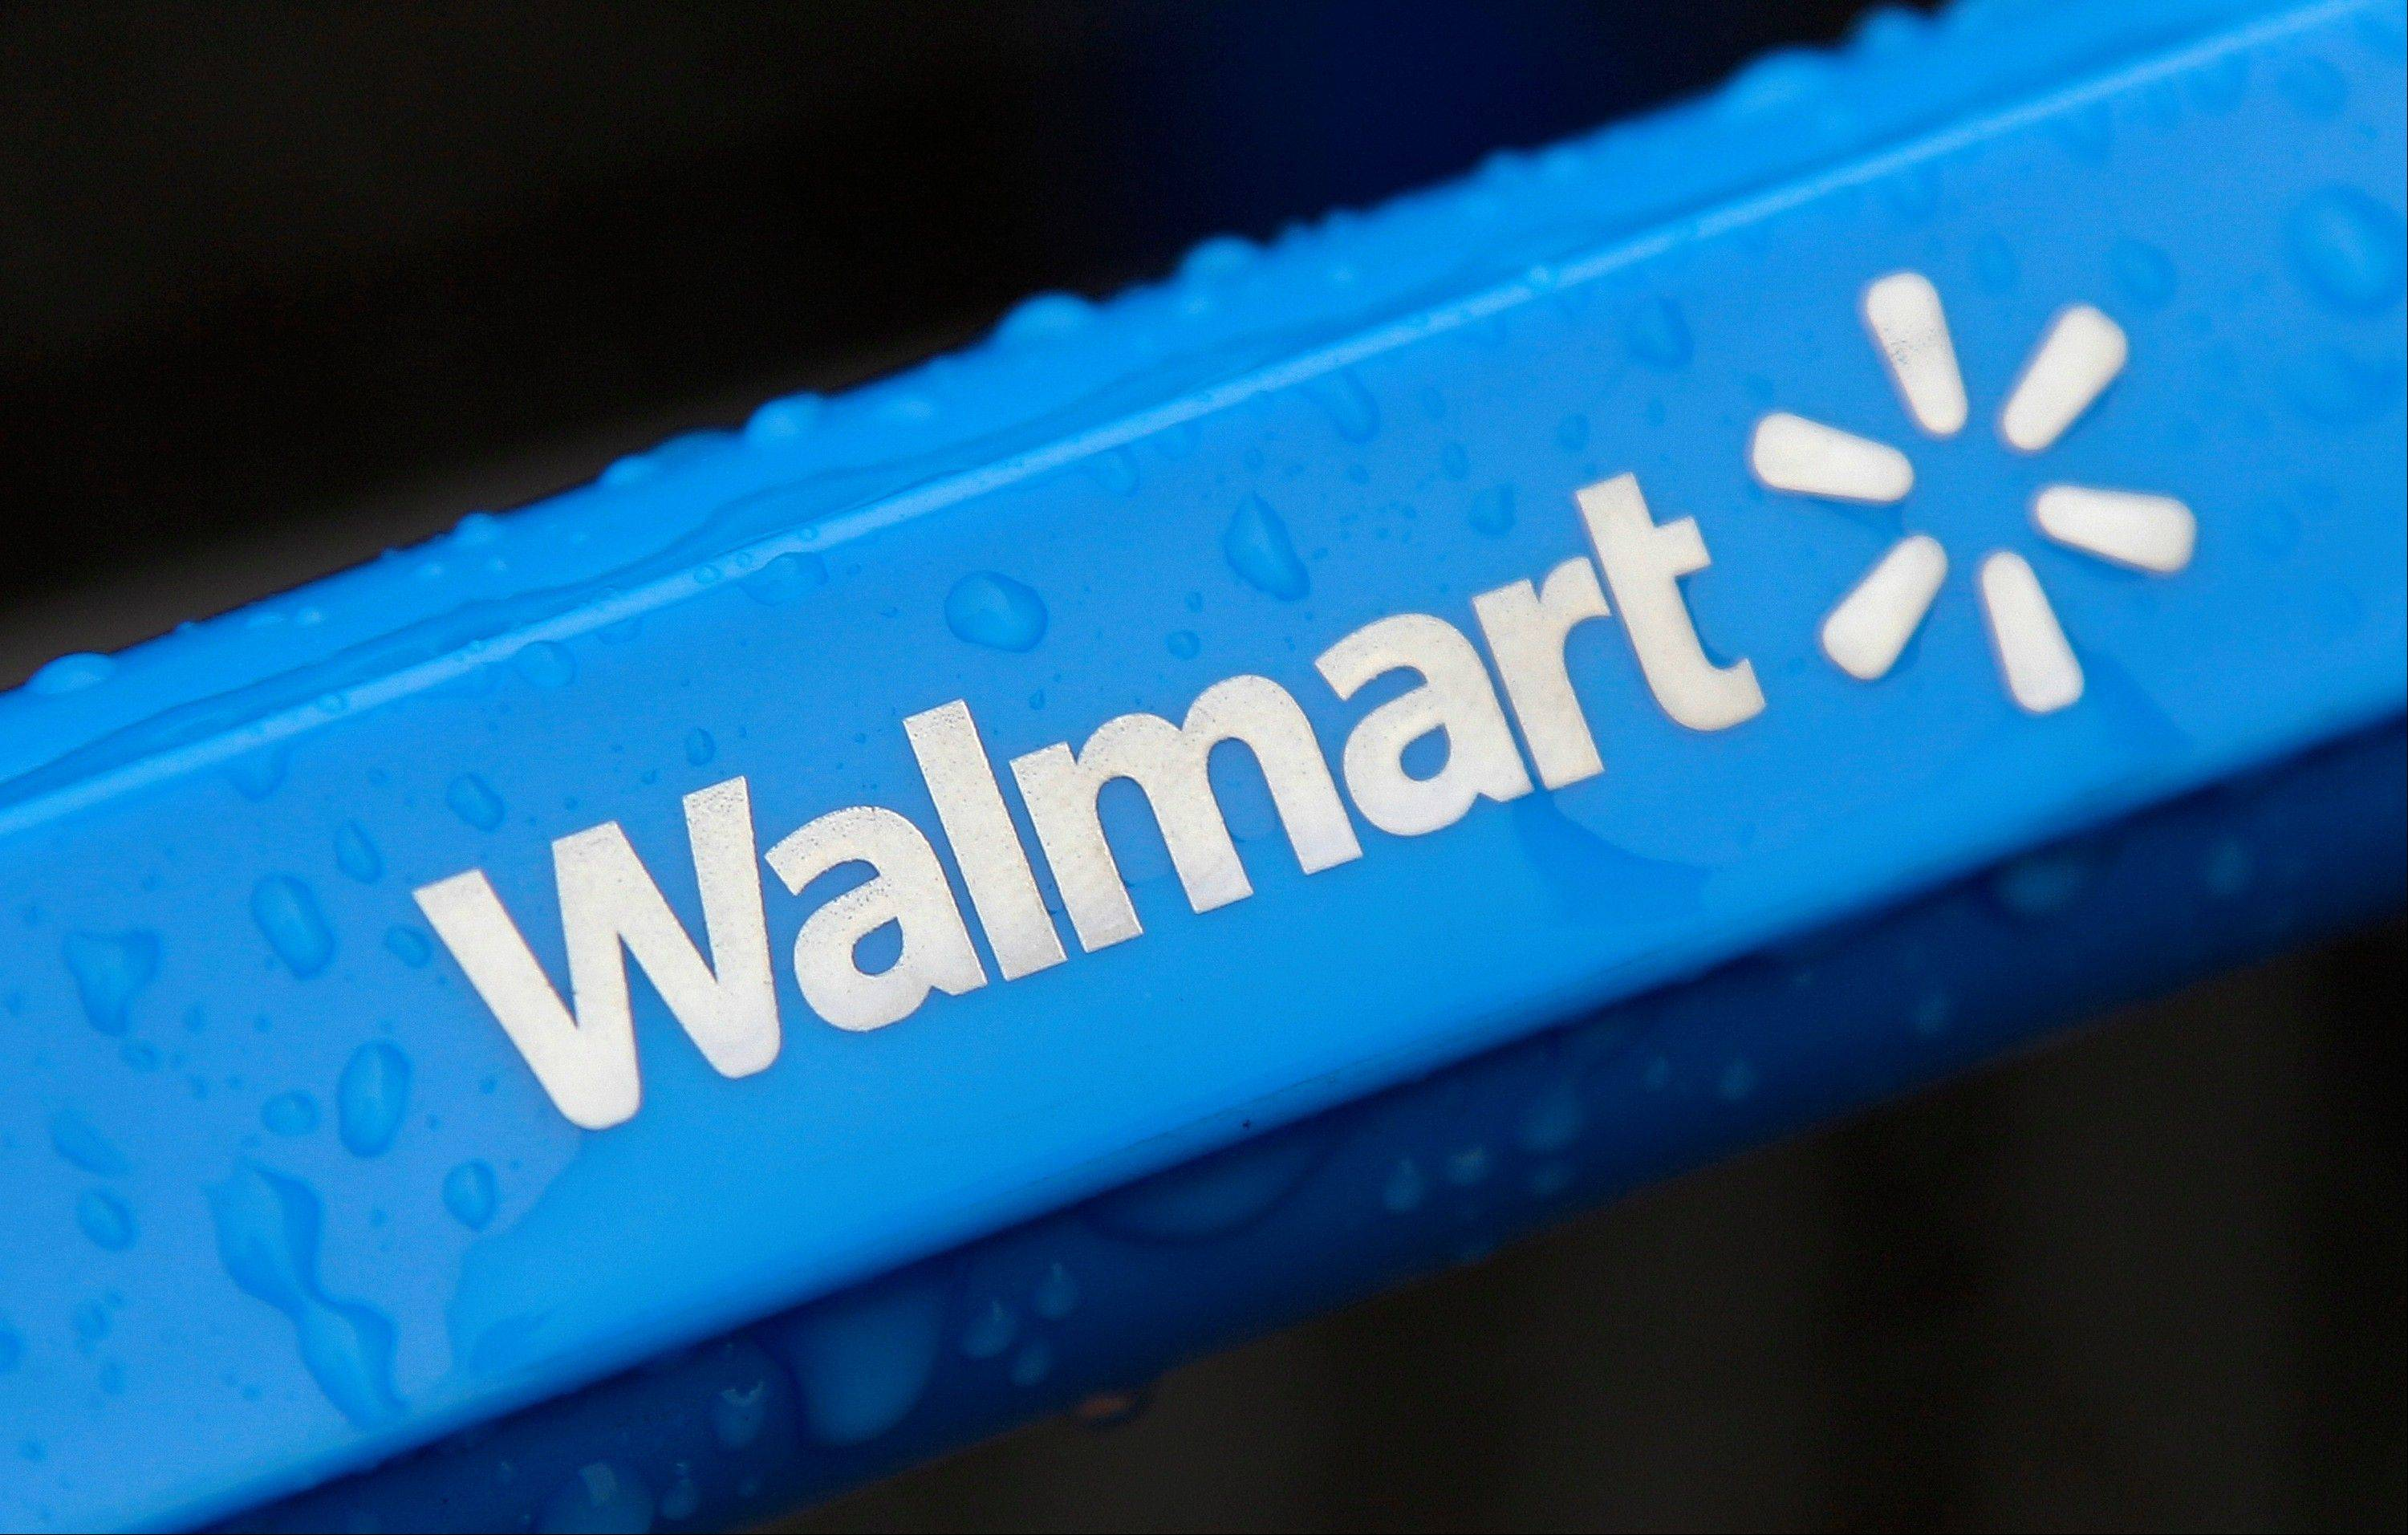 Wal-Mart Stores Inc., the world's largest retailer, is trying out new delivery methods and adding to its mobile technology to improve Web-based shopping and step up its challenge to Amazon.com Inc.